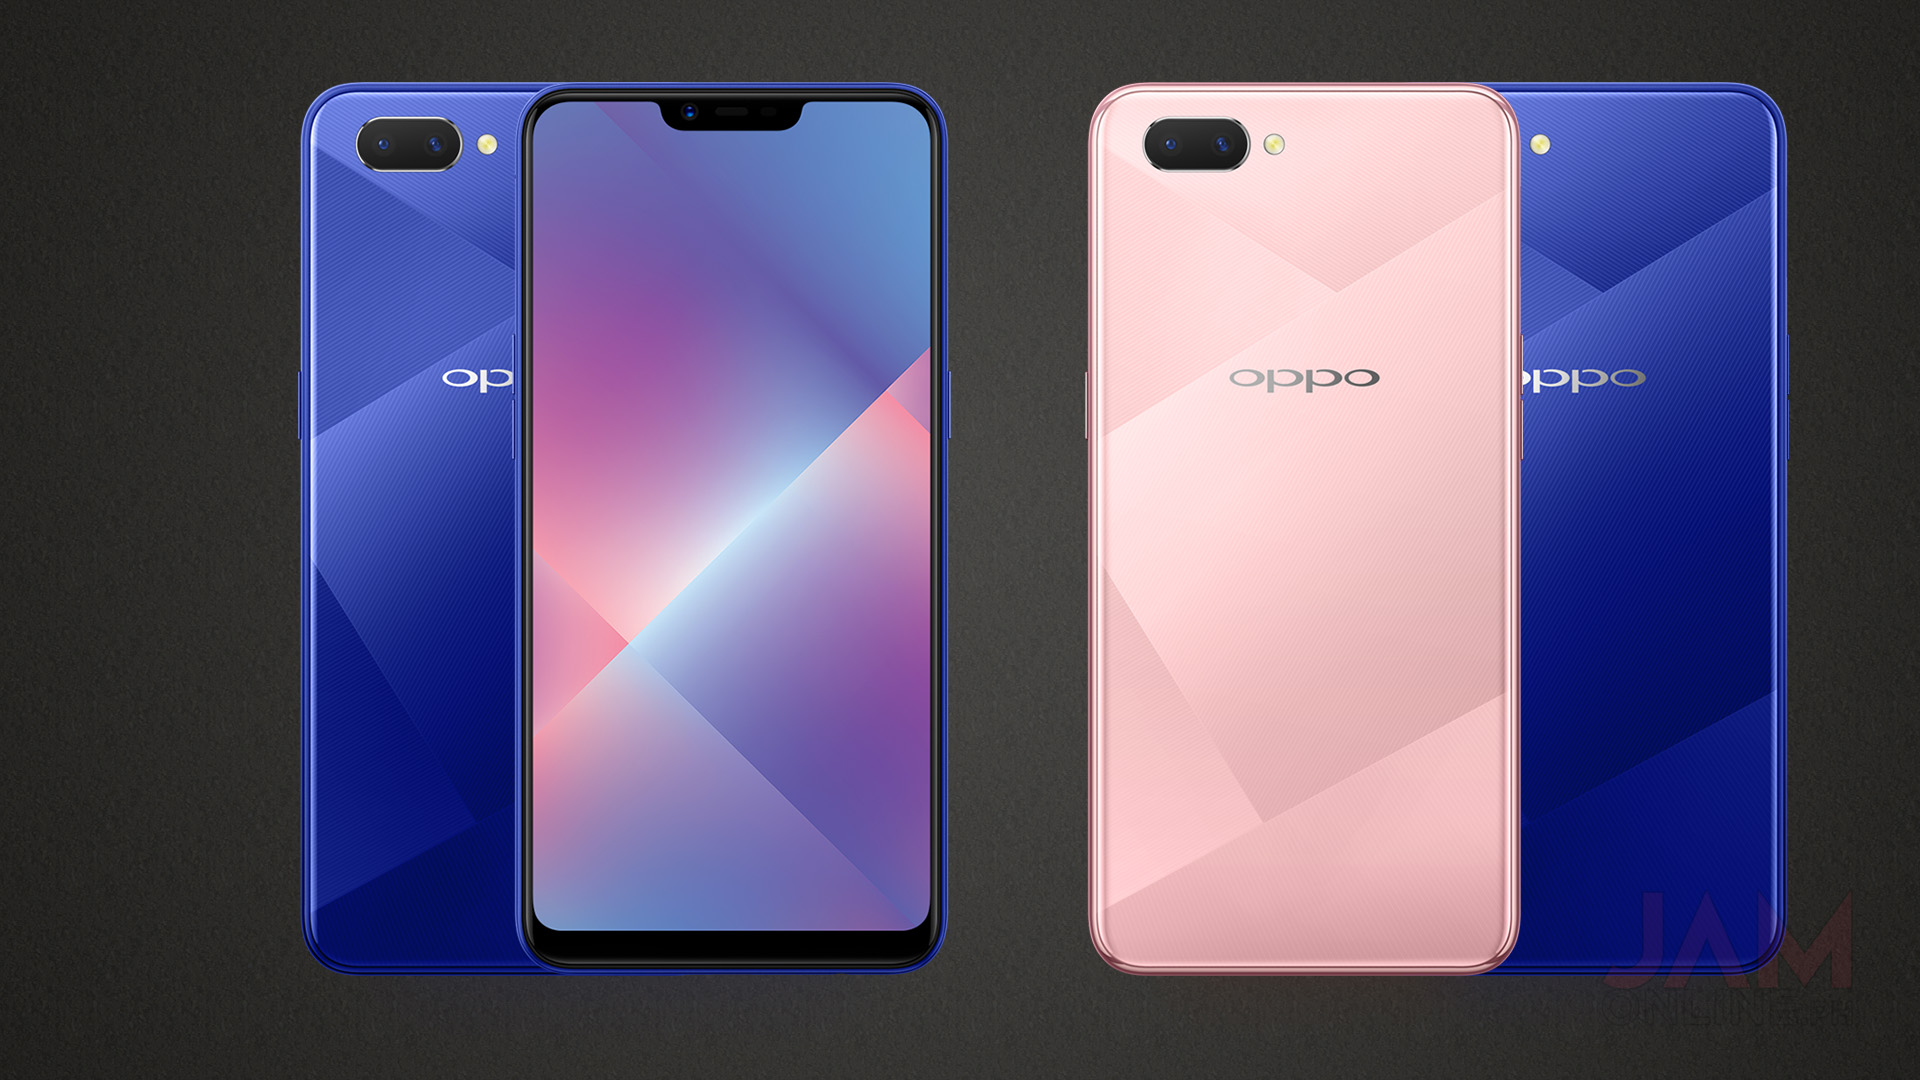 Oppo A3s Specs And Price Philippines - Oppo Smartphone